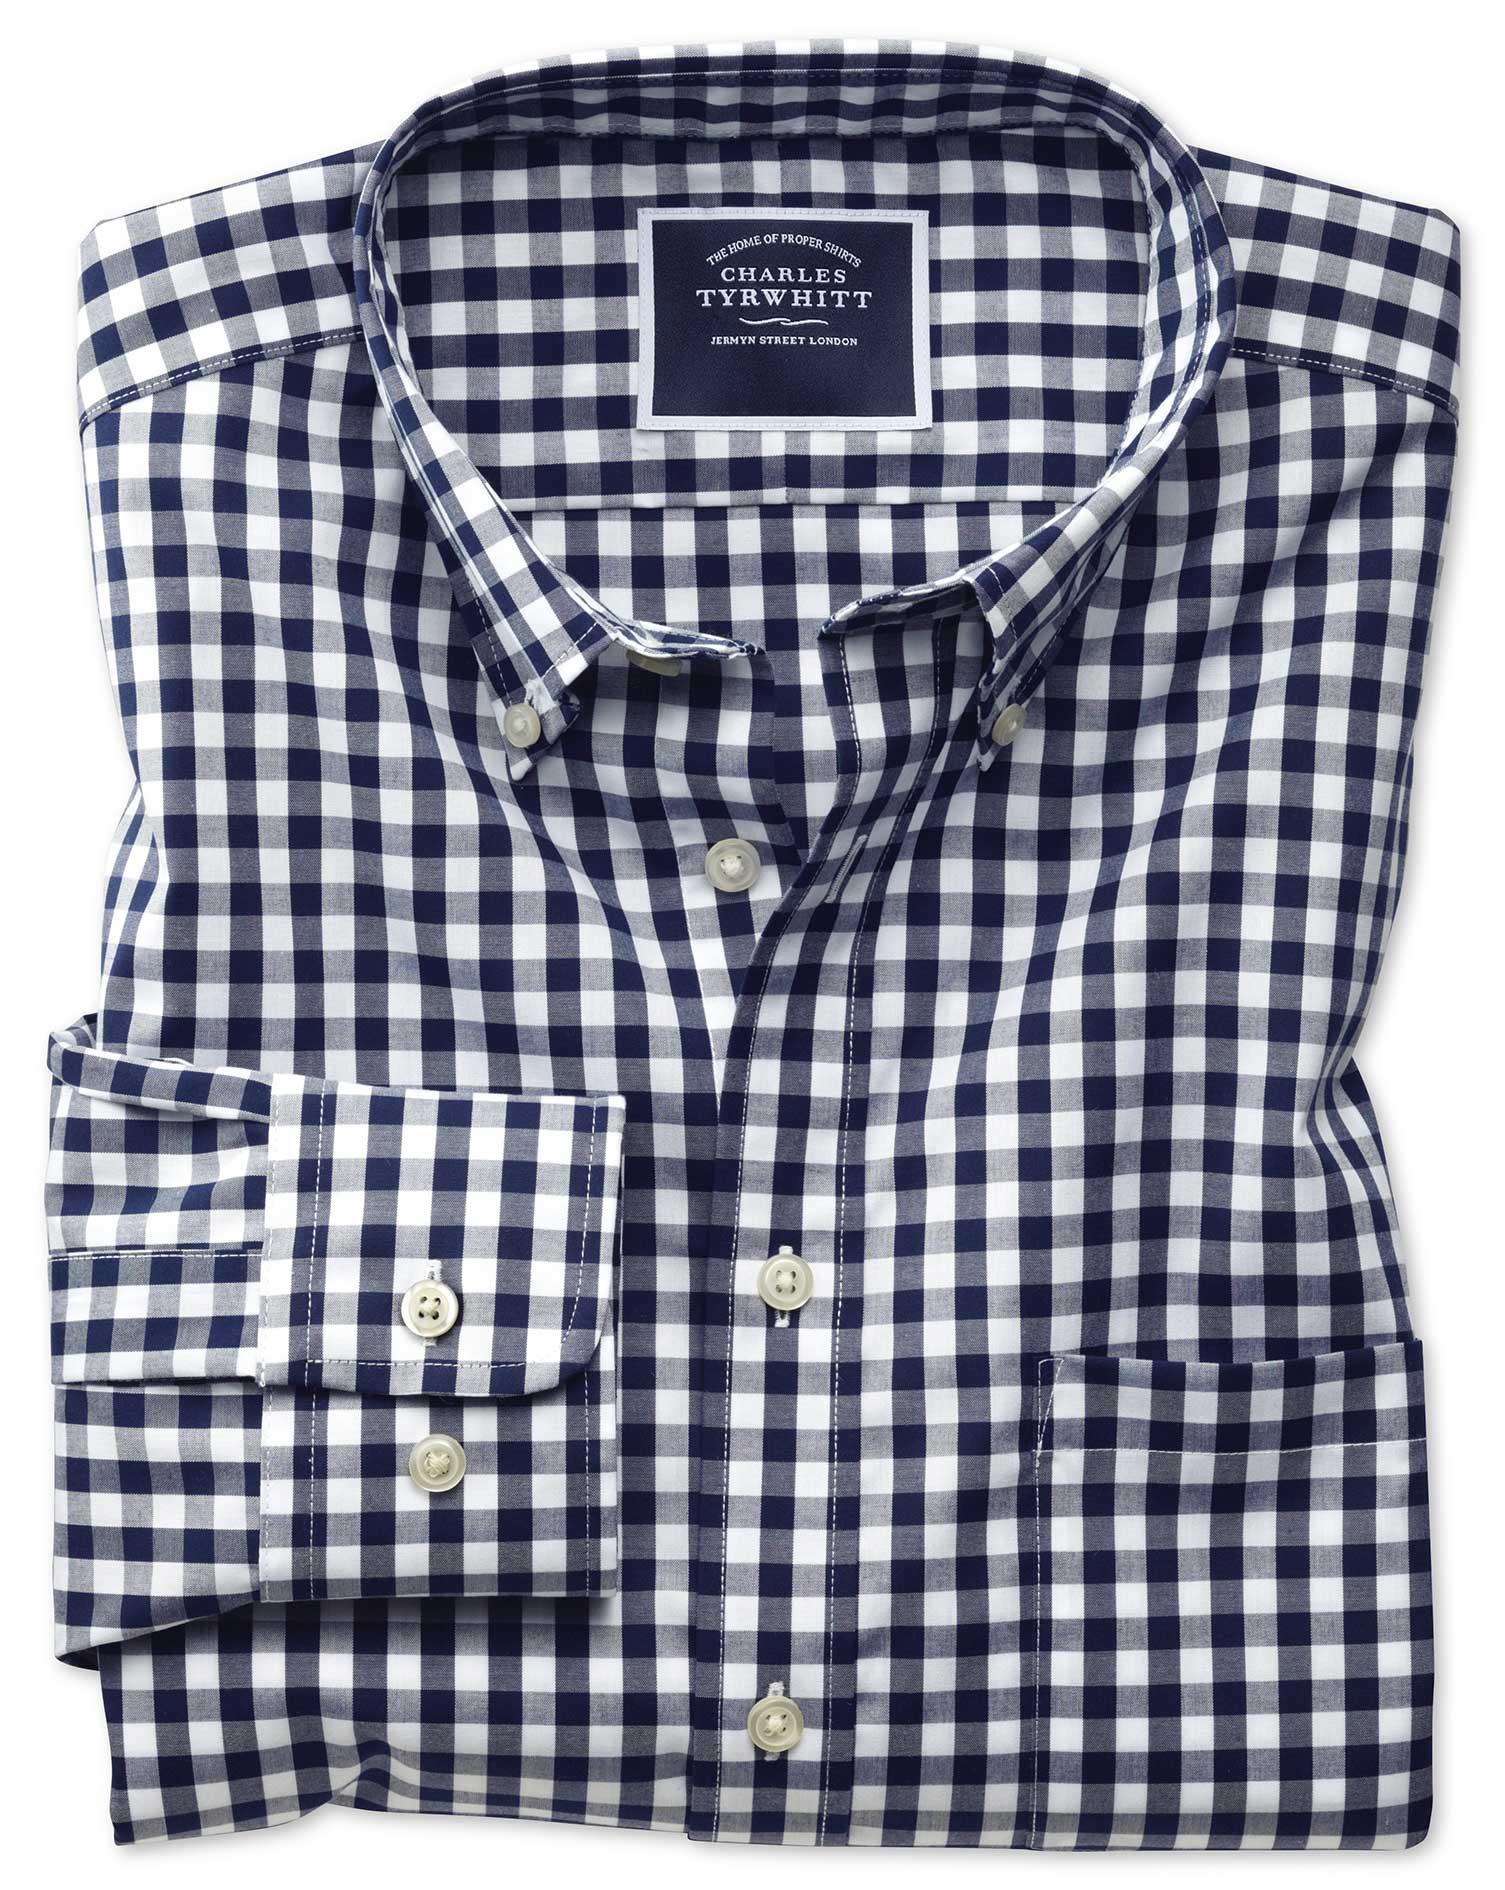 Slim Fit Button-Down Non-Iron Poplin Navy Gingham Cotton Shirt Single Cuff Size Small by Charles Tyr